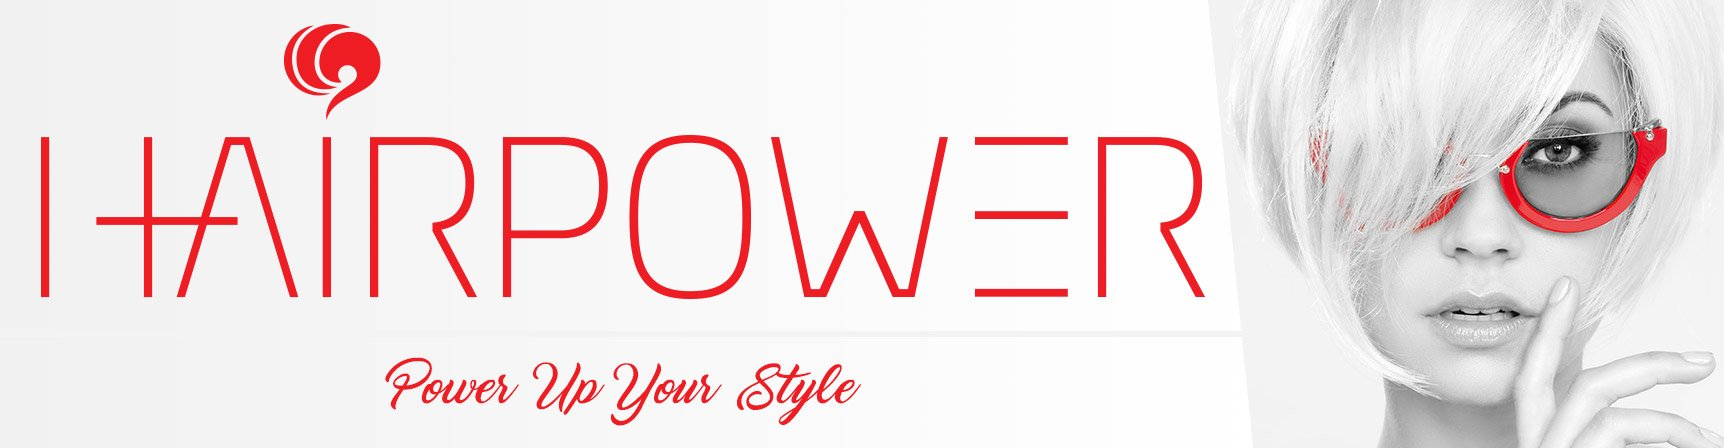 ew-banner-may-launch-hairpower-generic-5b879d13-4fdb-4416-8c41-a9f9dada7273.jpg